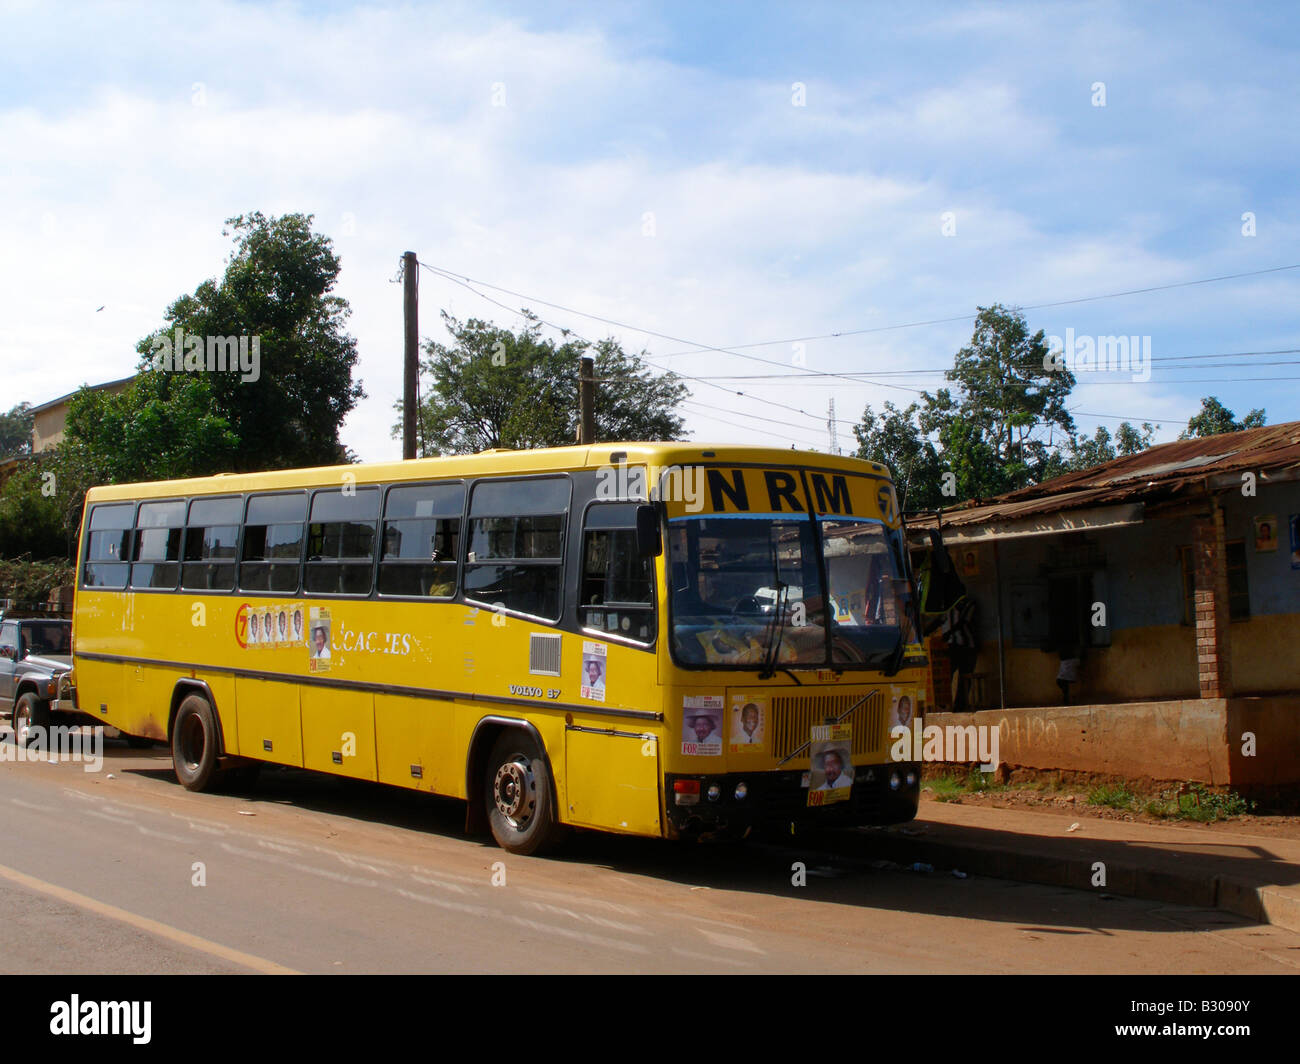 The yellow NRM bus with presidential campaign posters in Kampala, Uganda Stock Photo